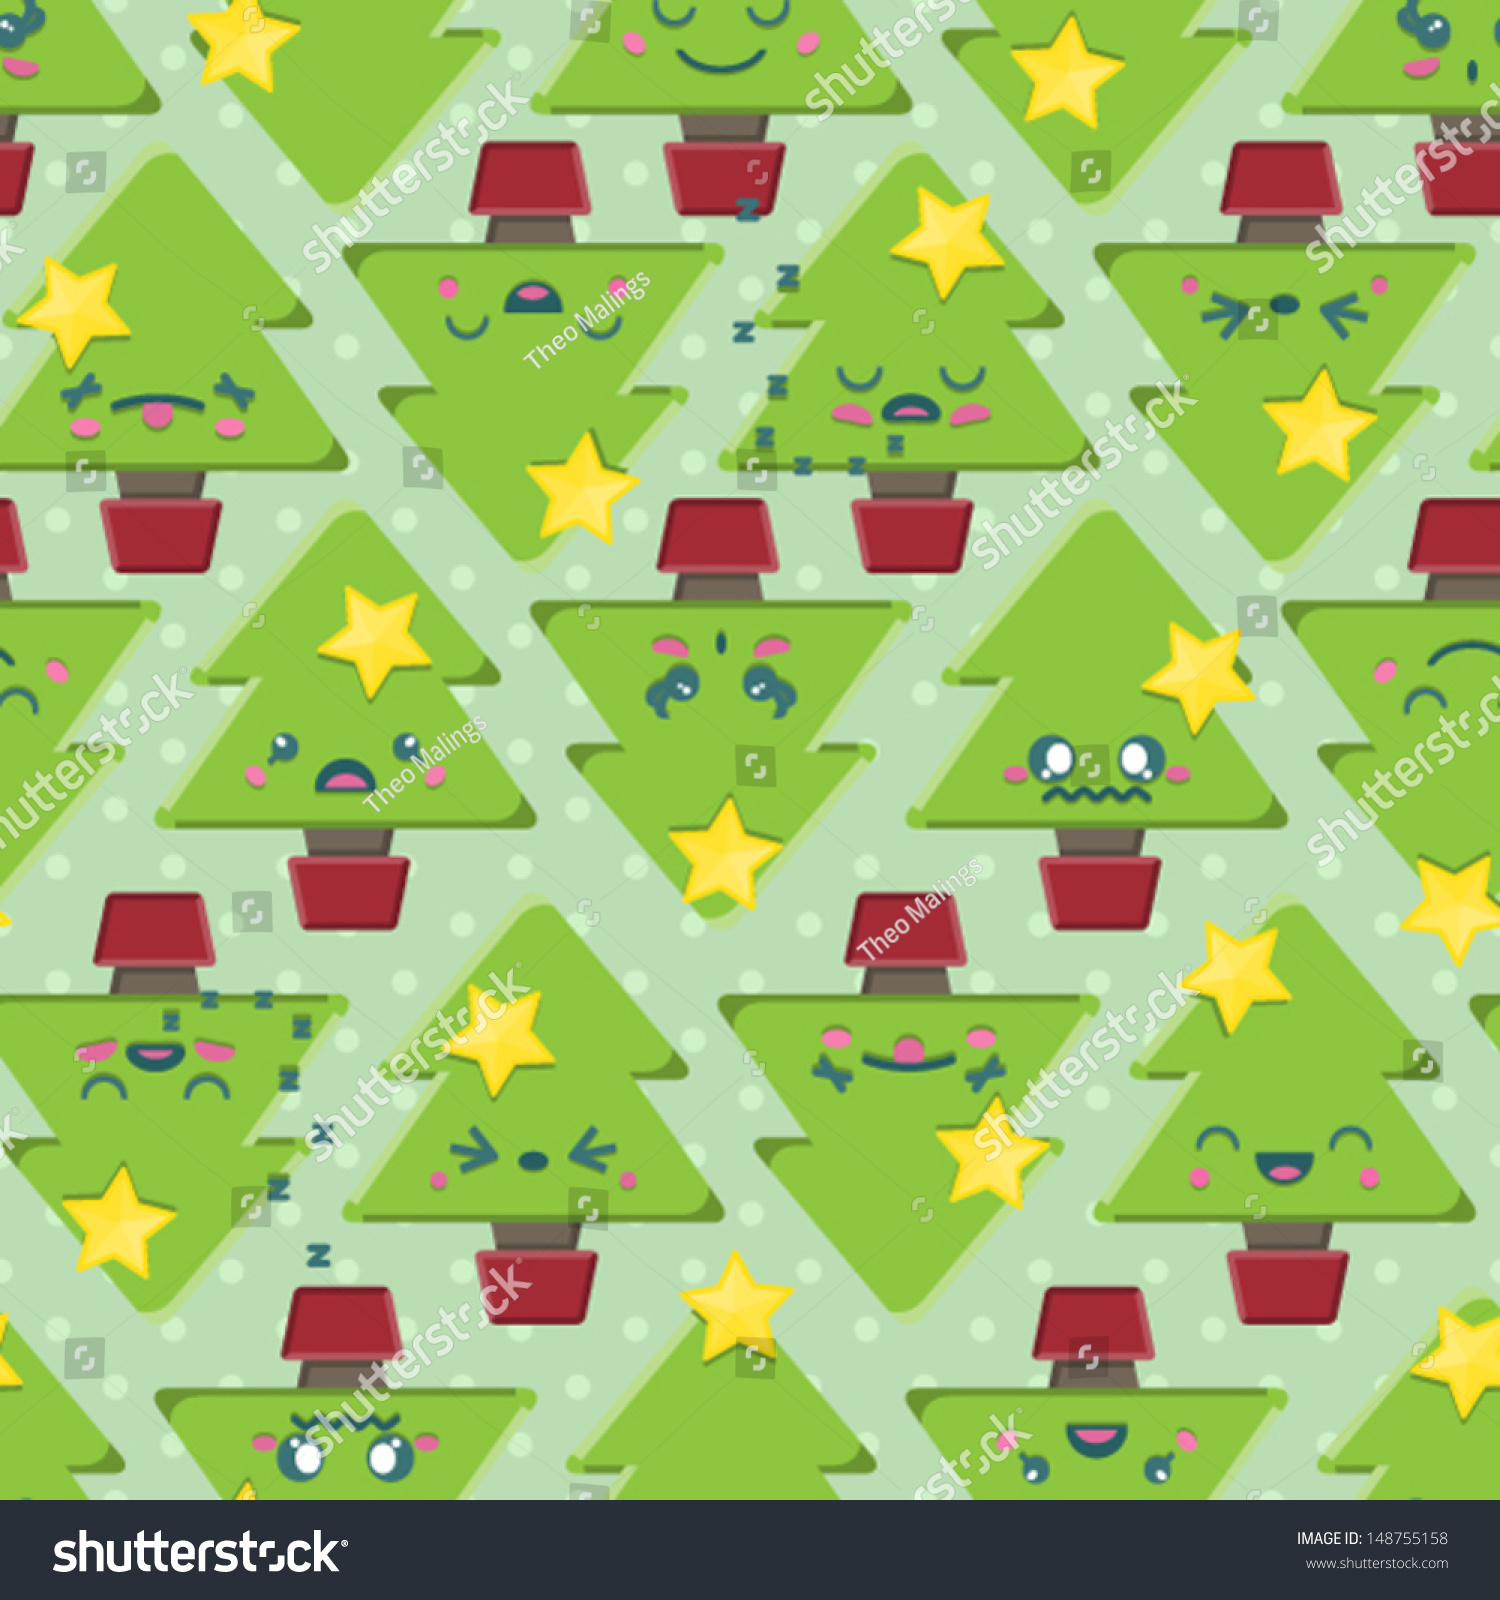 Seamless Background Tile Super Cute Kawaii Stock Vector (Royalty ...